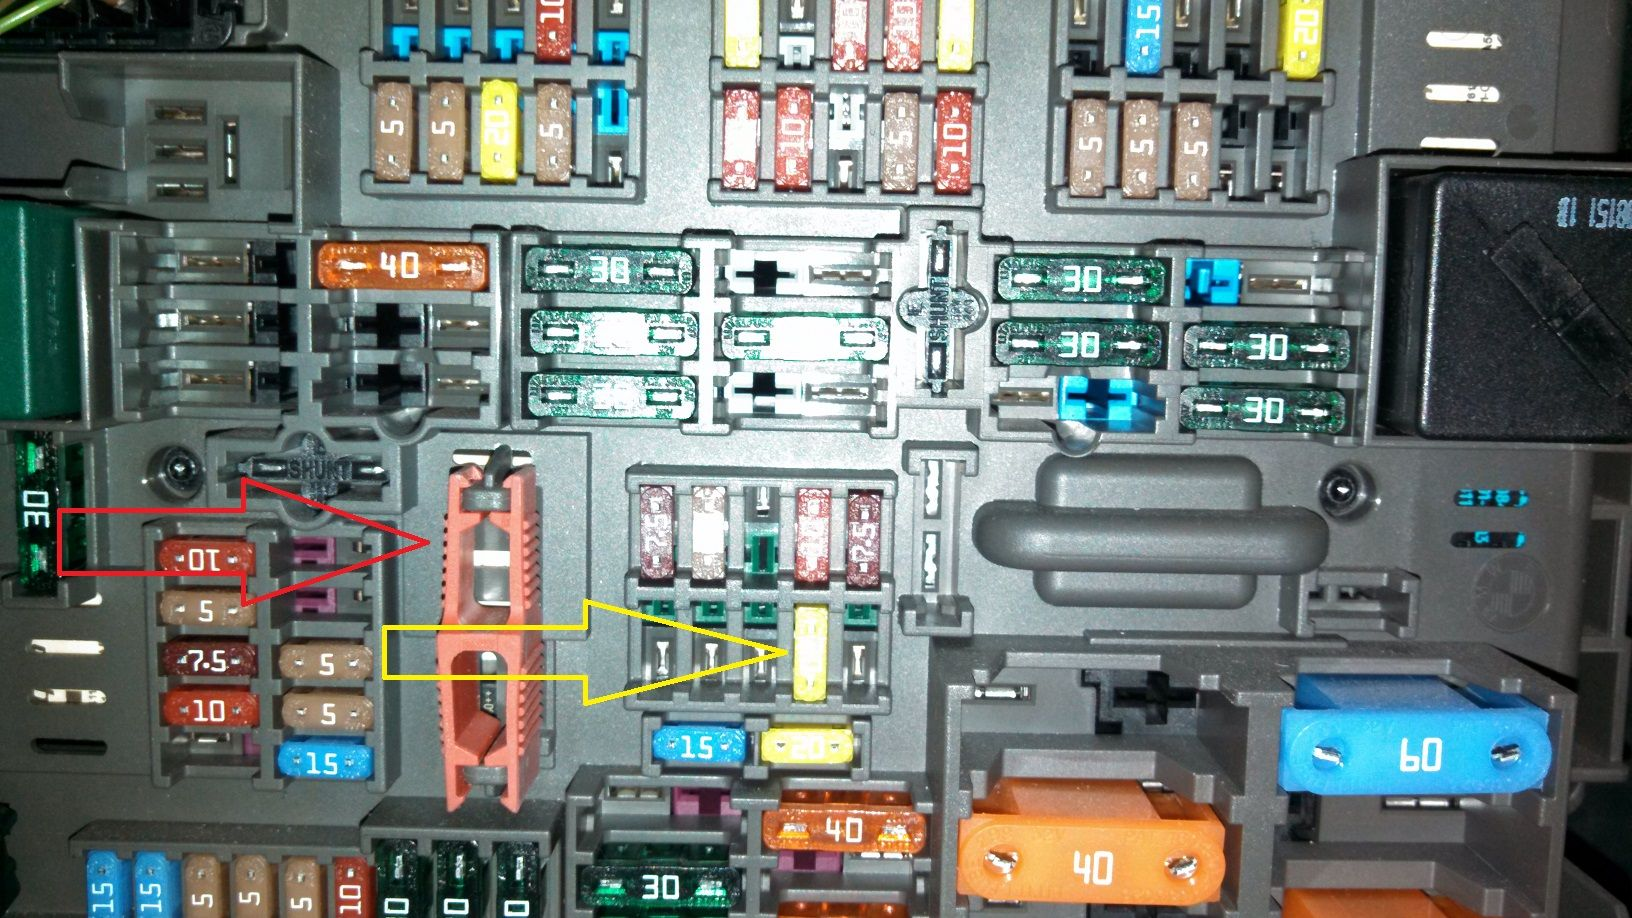 hight resolution of e90 water pump fuse box wiring diagram blogs rh 10 12 2 restaurant freinsheimer hof de bmw 328i fuse box location 2006 325i fuse box location